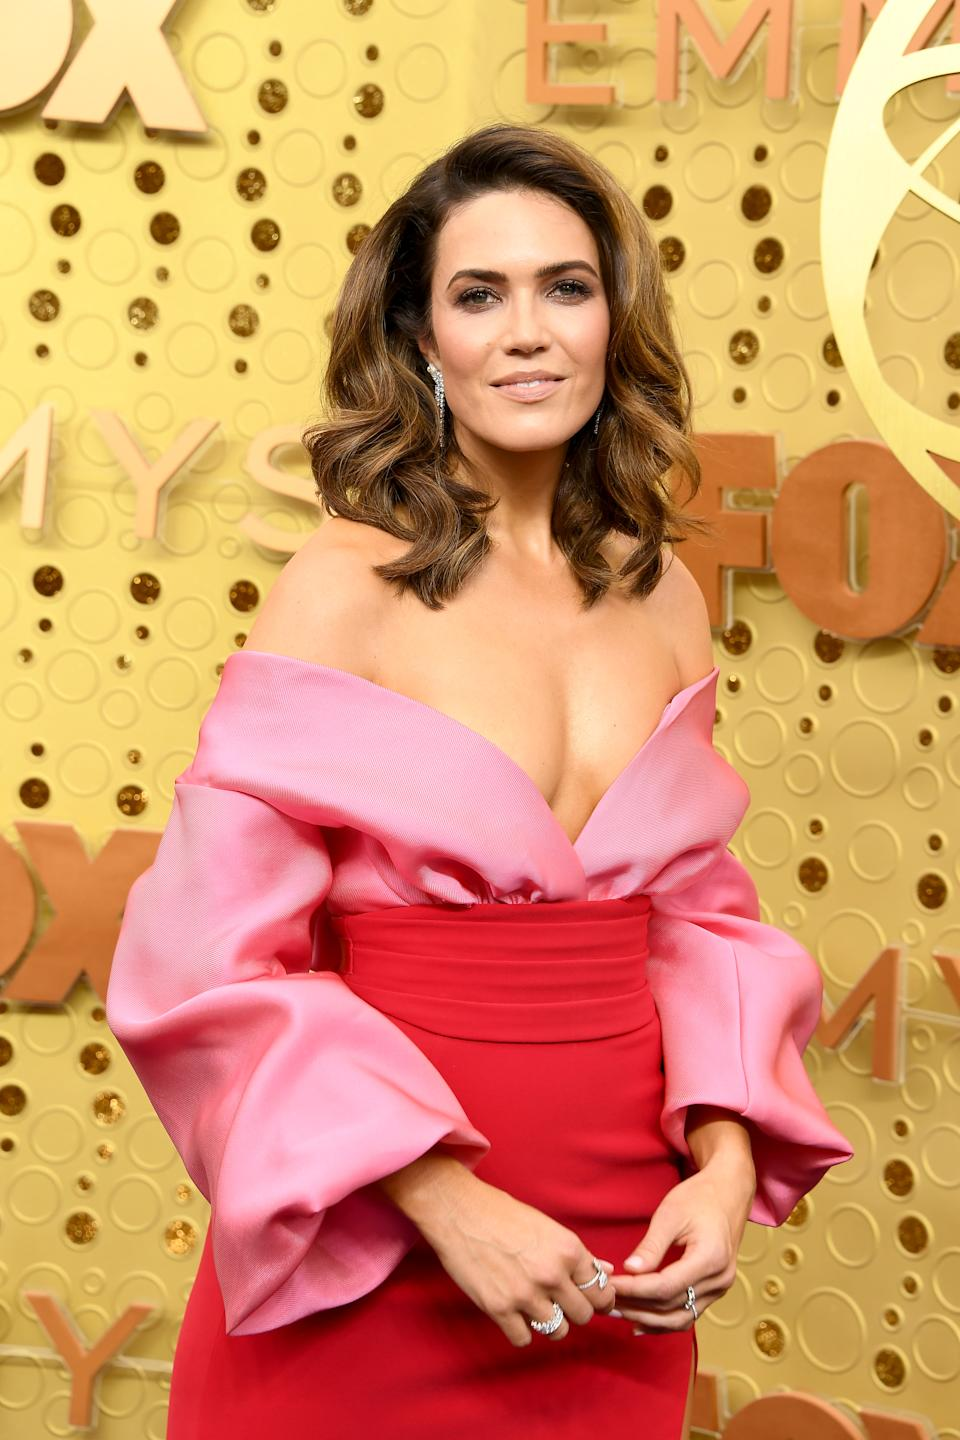 LOS ANGELES, CALIFORNIA - SEPTEMBER 22: Mandy Moore attends the 71st Emmy Awards at Microsoft Theater on September 22, 2019 in Los Angeles, California. (Photo by Steve Granitz/WireImage)